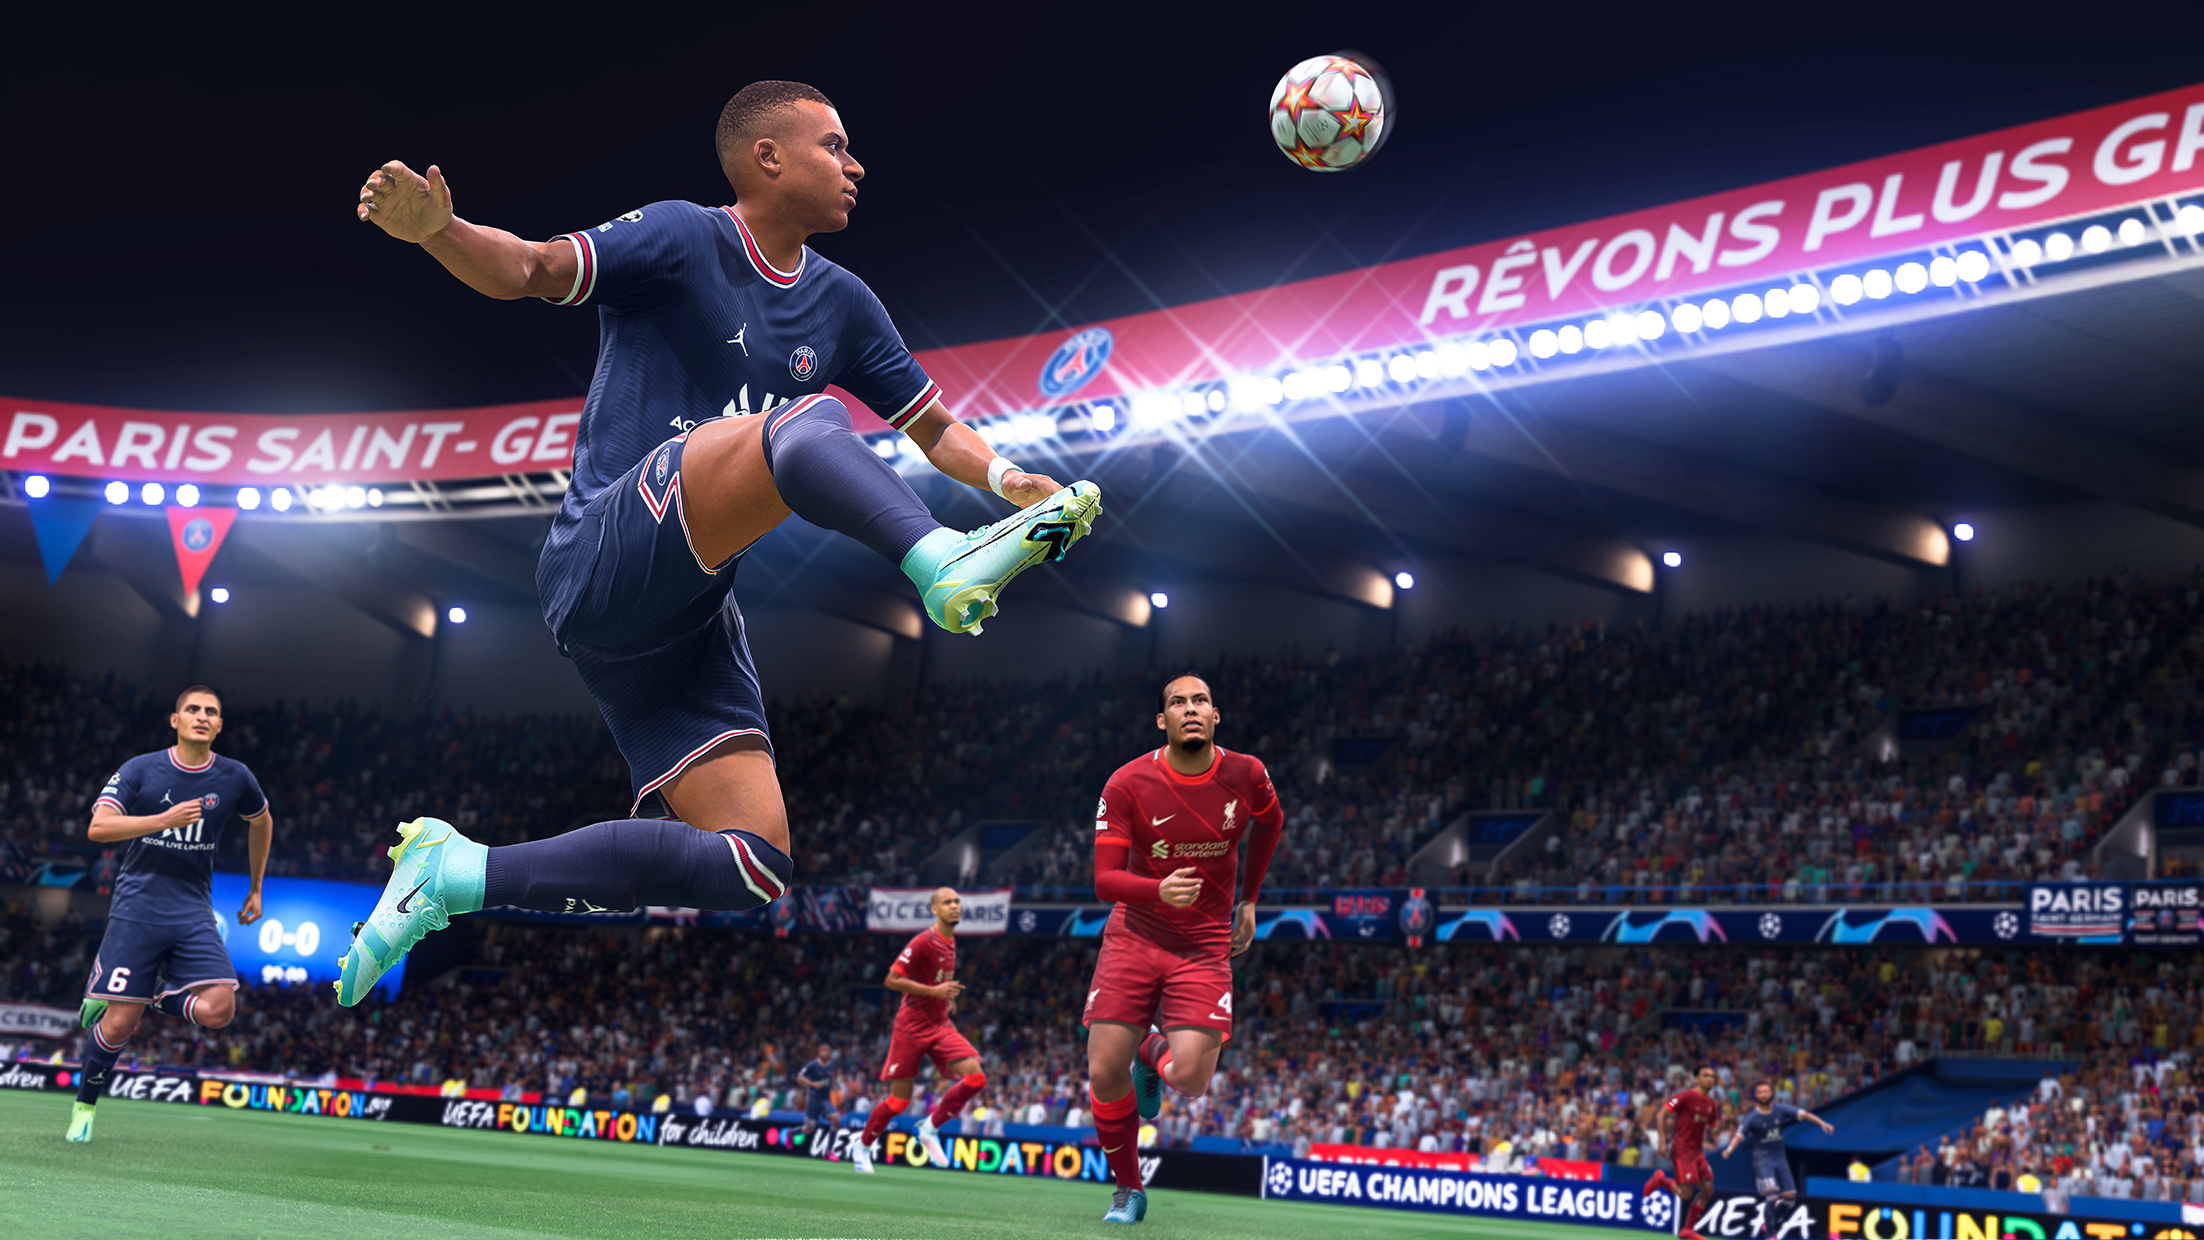 World superstar Kylian Mbappe of Paris-St. Germain makes a midair volley with his right foot extended.